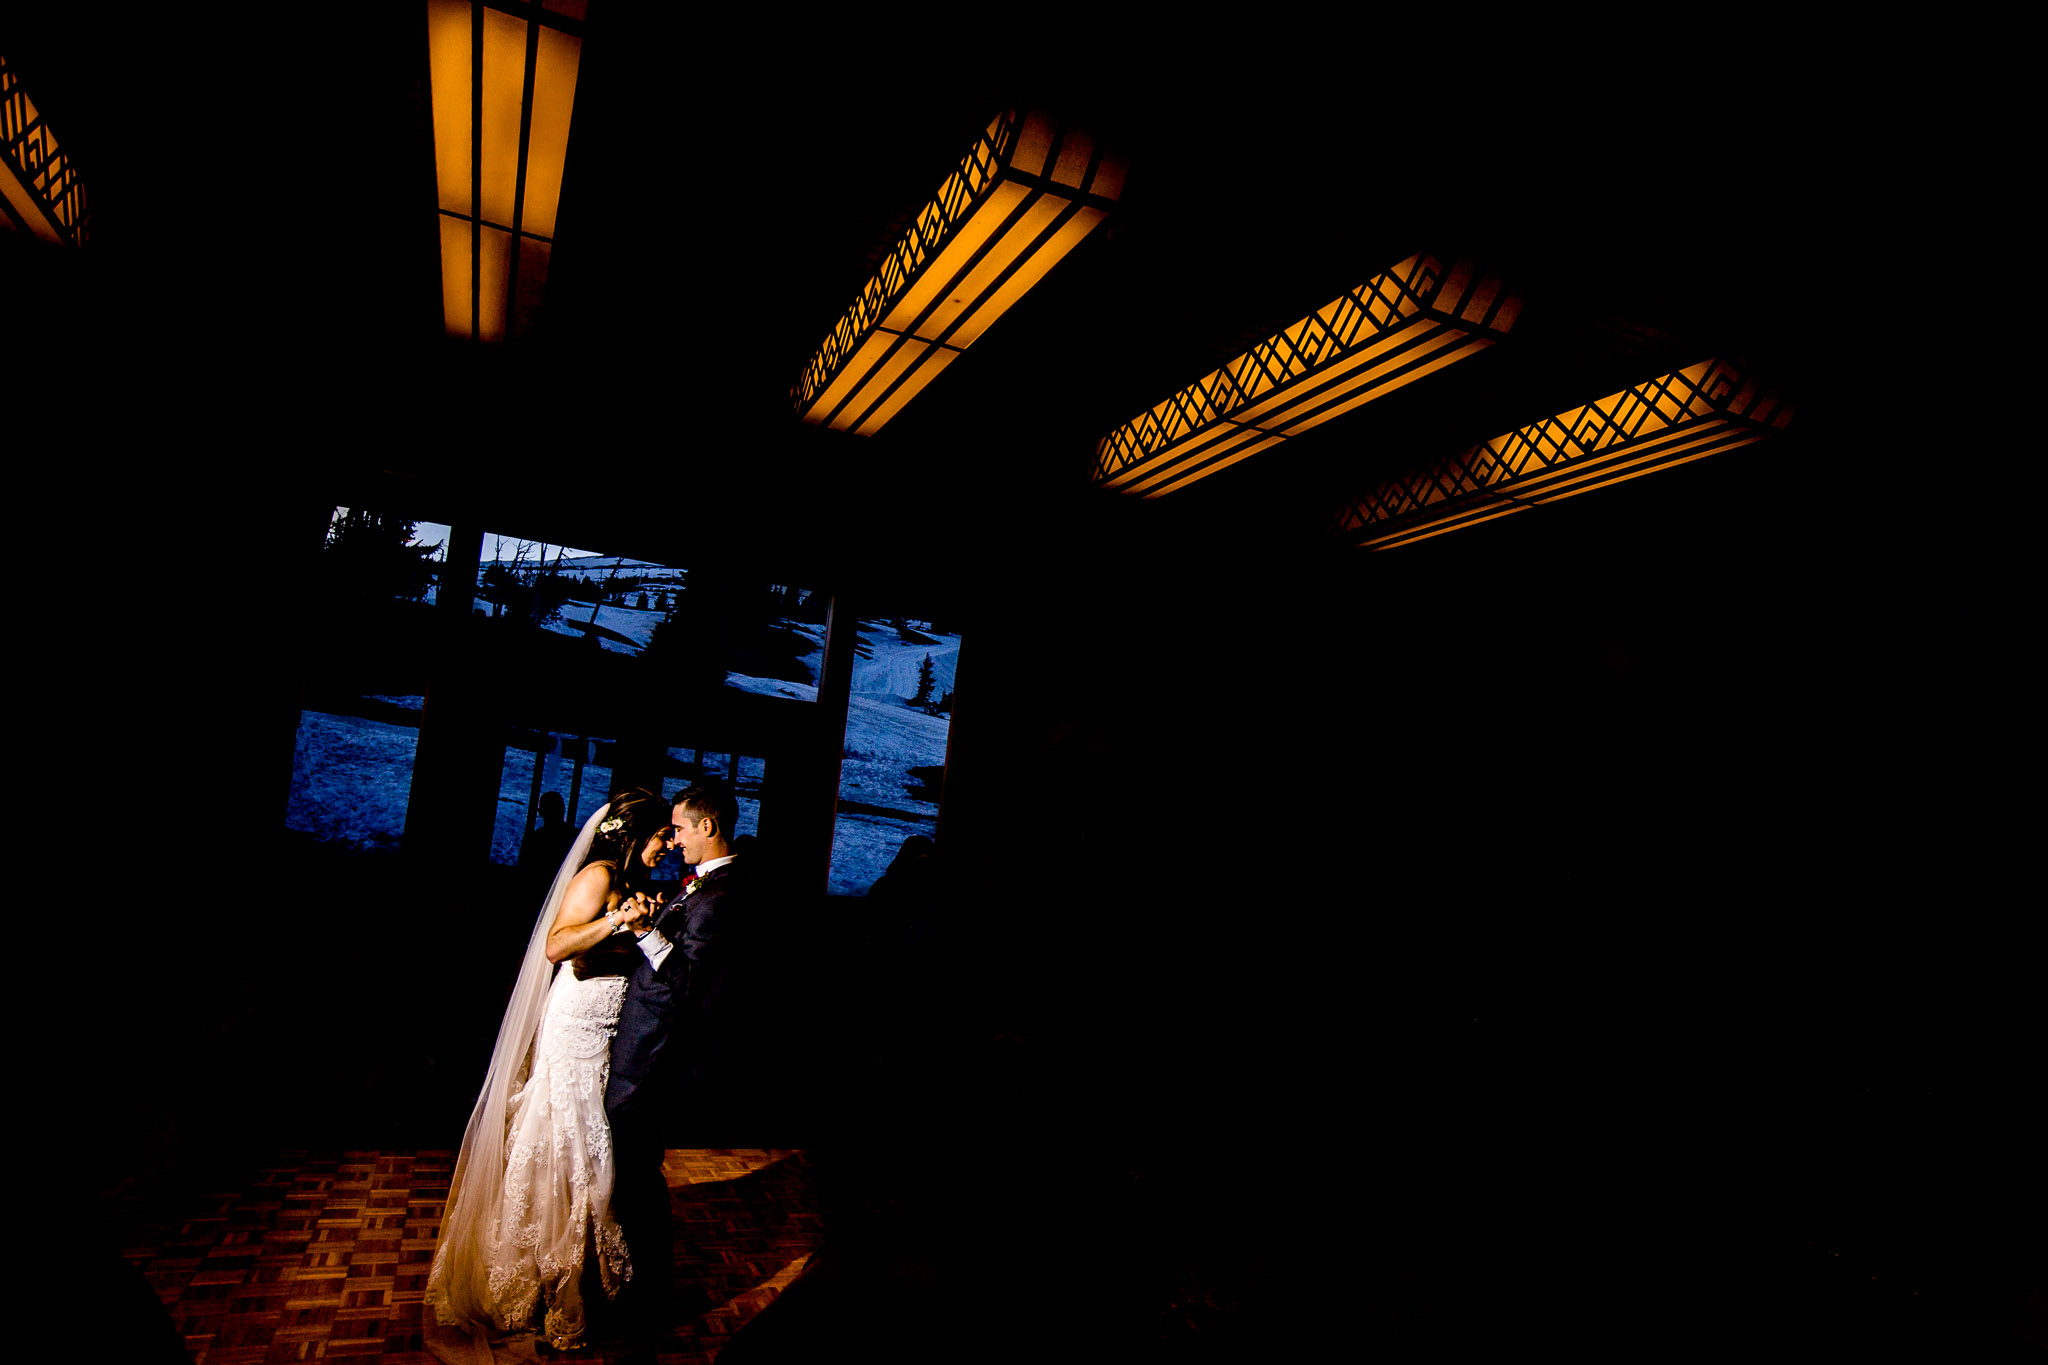 Bride and Groom First Dance at Ulman Hall Timberline Lodge